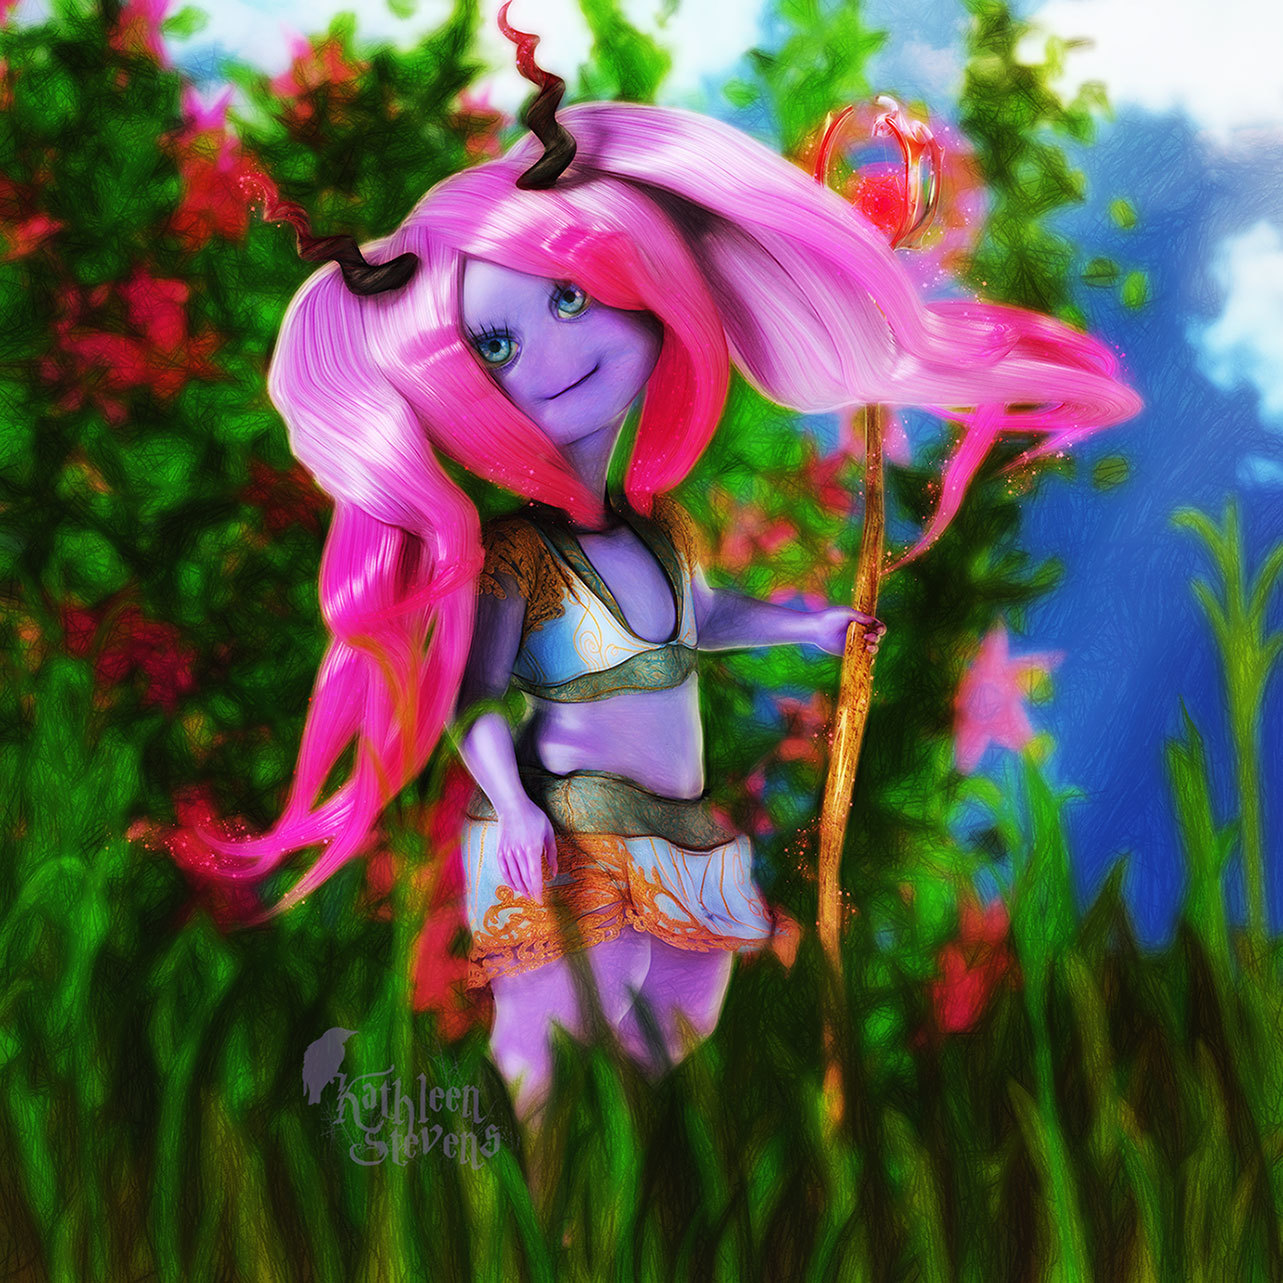 Little Creature by loligagger